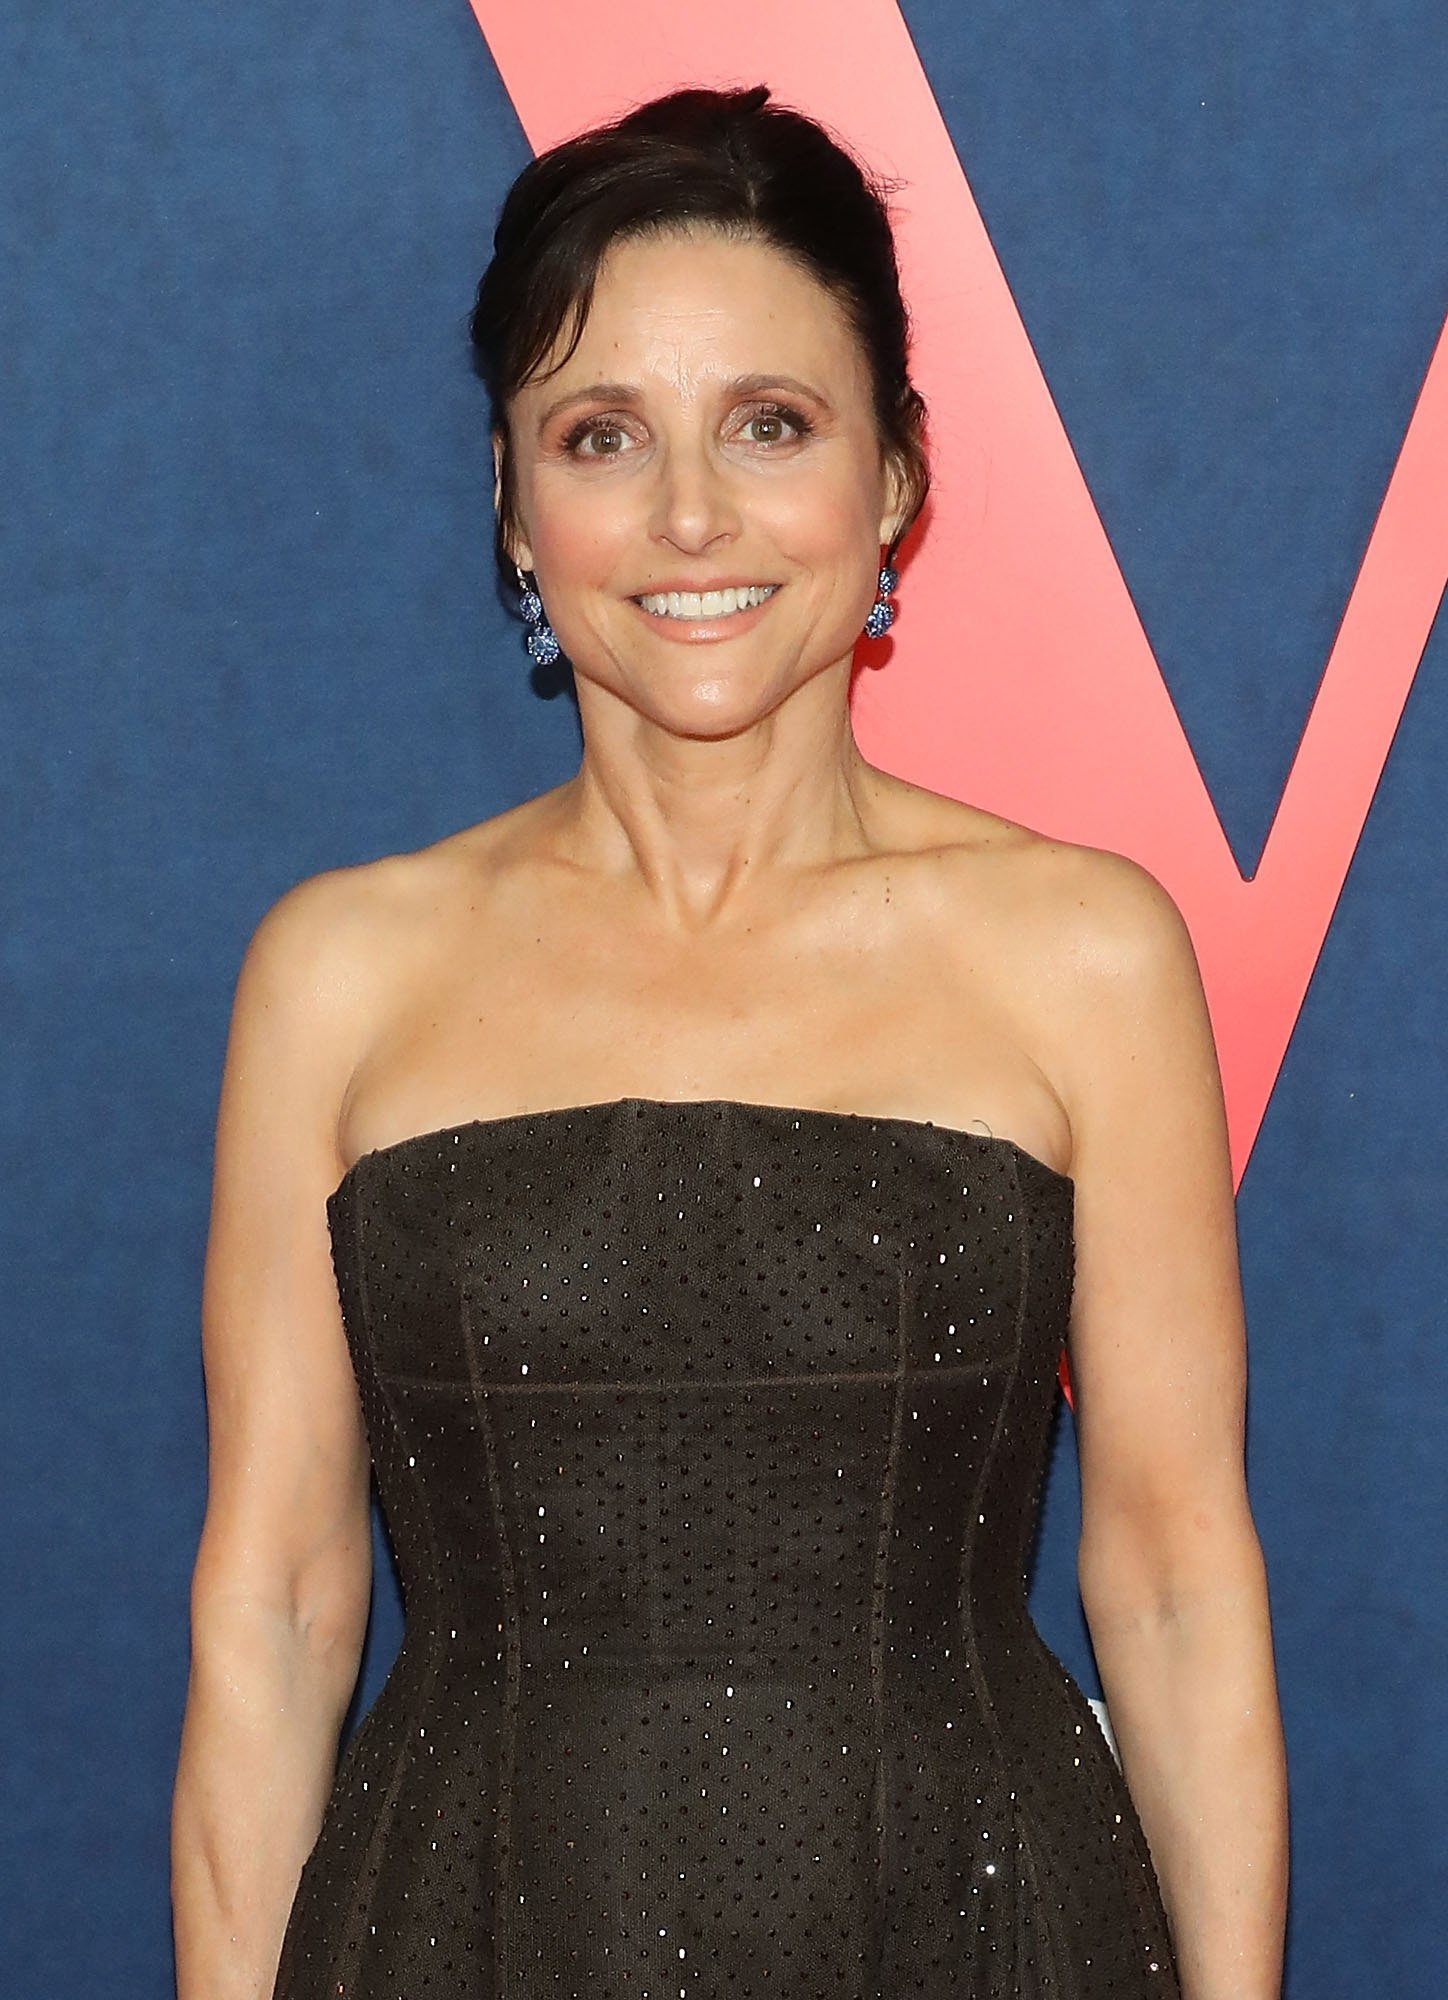 Julia Louis-Dreyfus. I Image: Getty Images.